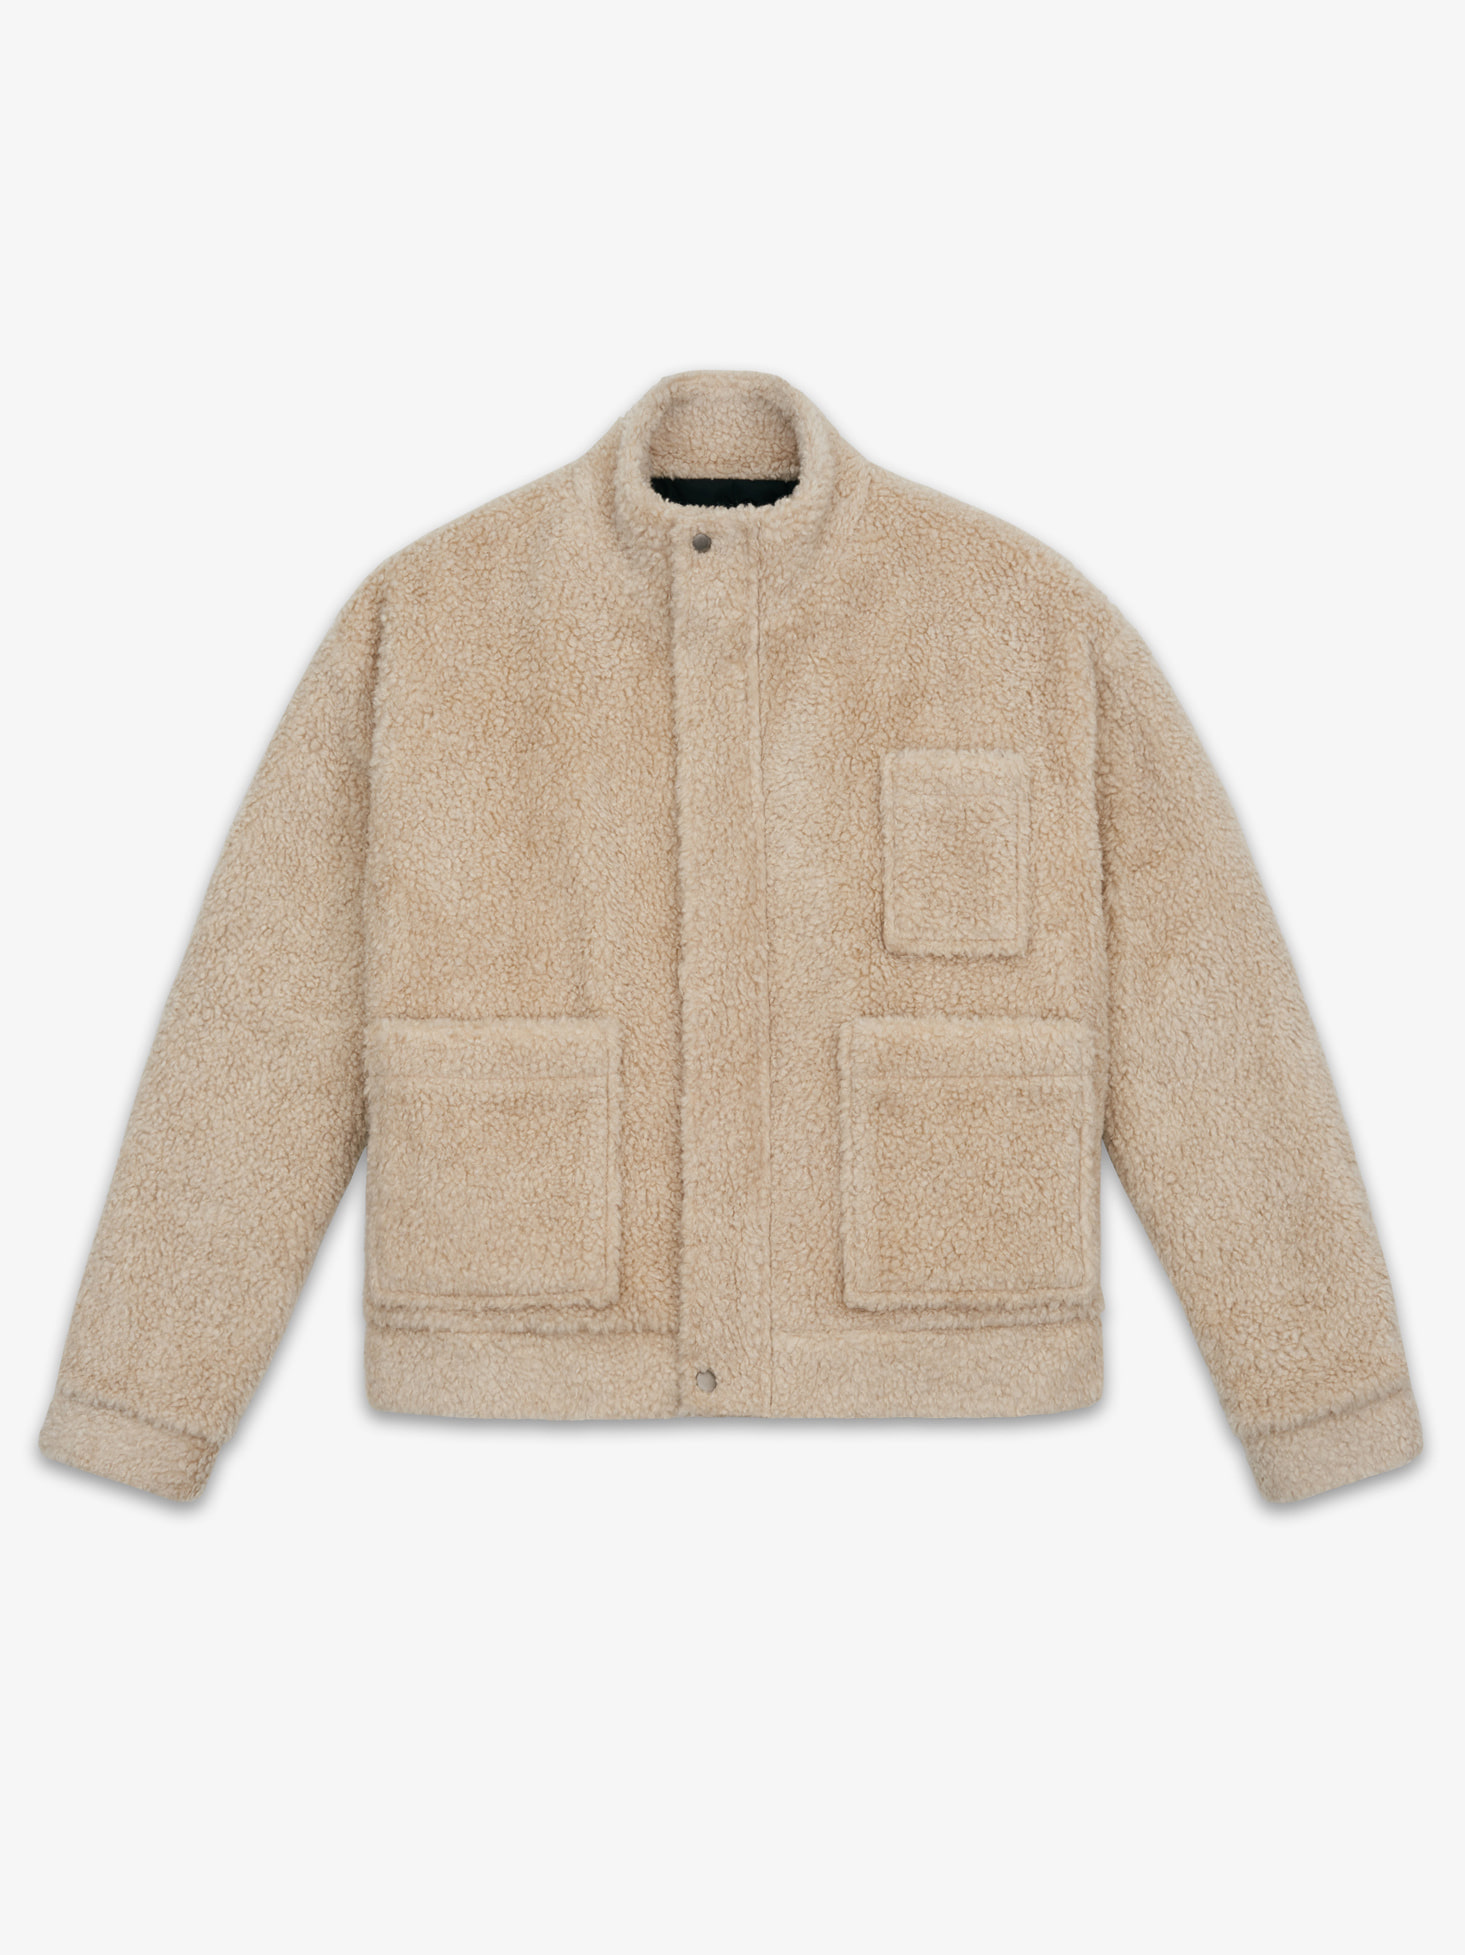 LAMBS WOOL MOBILE JACKET(BEIGE) 시즌오프 60% 특별할인 248,000원 ->